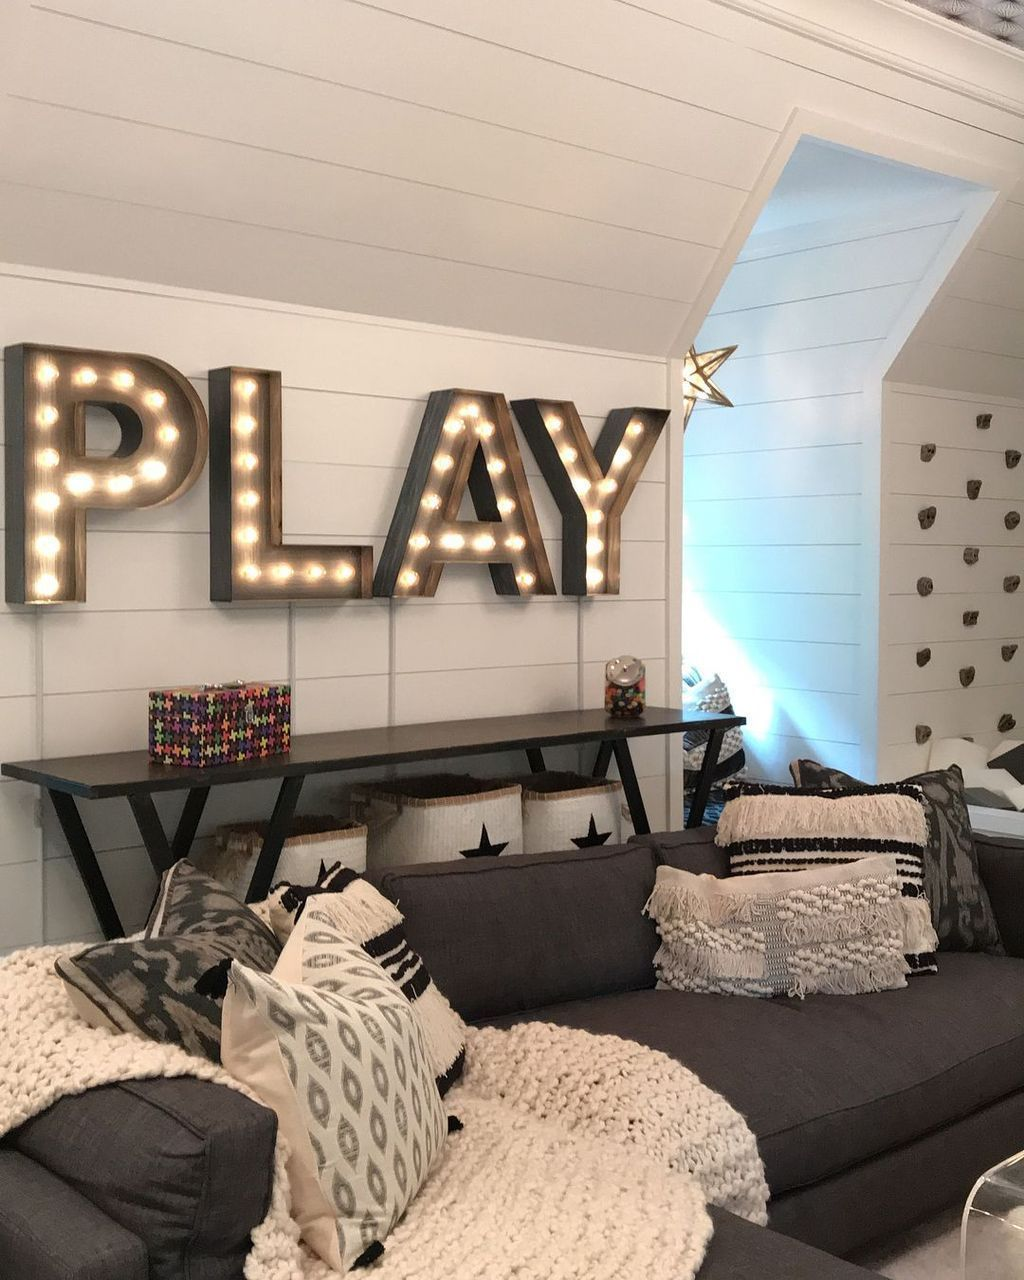 While they started out with simple dots on a screen, they've evolved into incredibly realistic, immersive worlds. Awesome Game Room Decor Ideas 33 | Toy room decor, Game ...